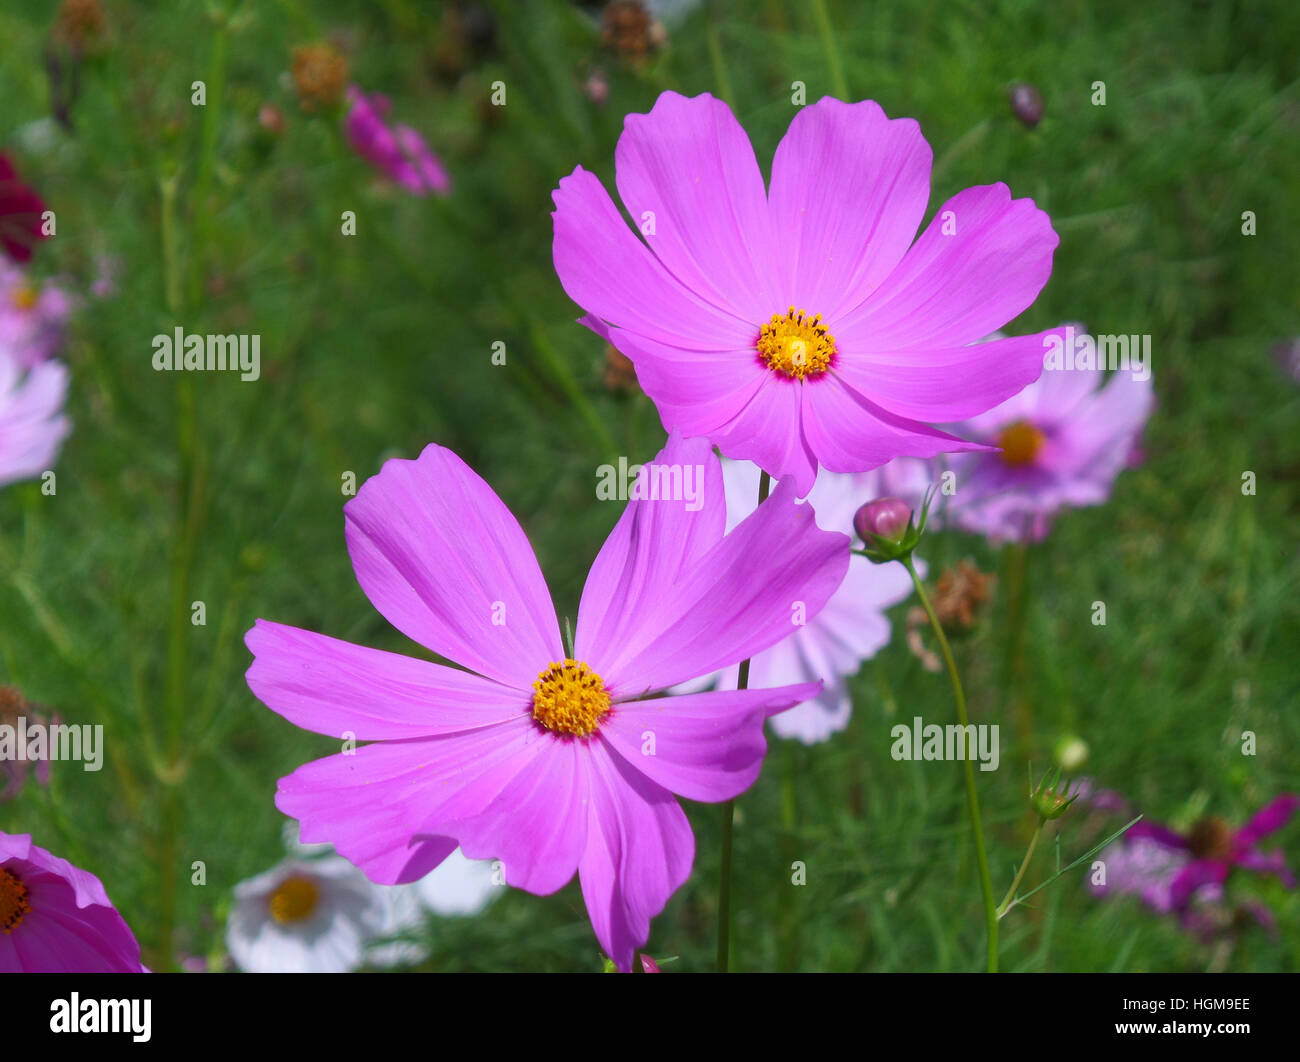 Two Blooming Vivid Pink Color Cosmos Flowers In The Green Field